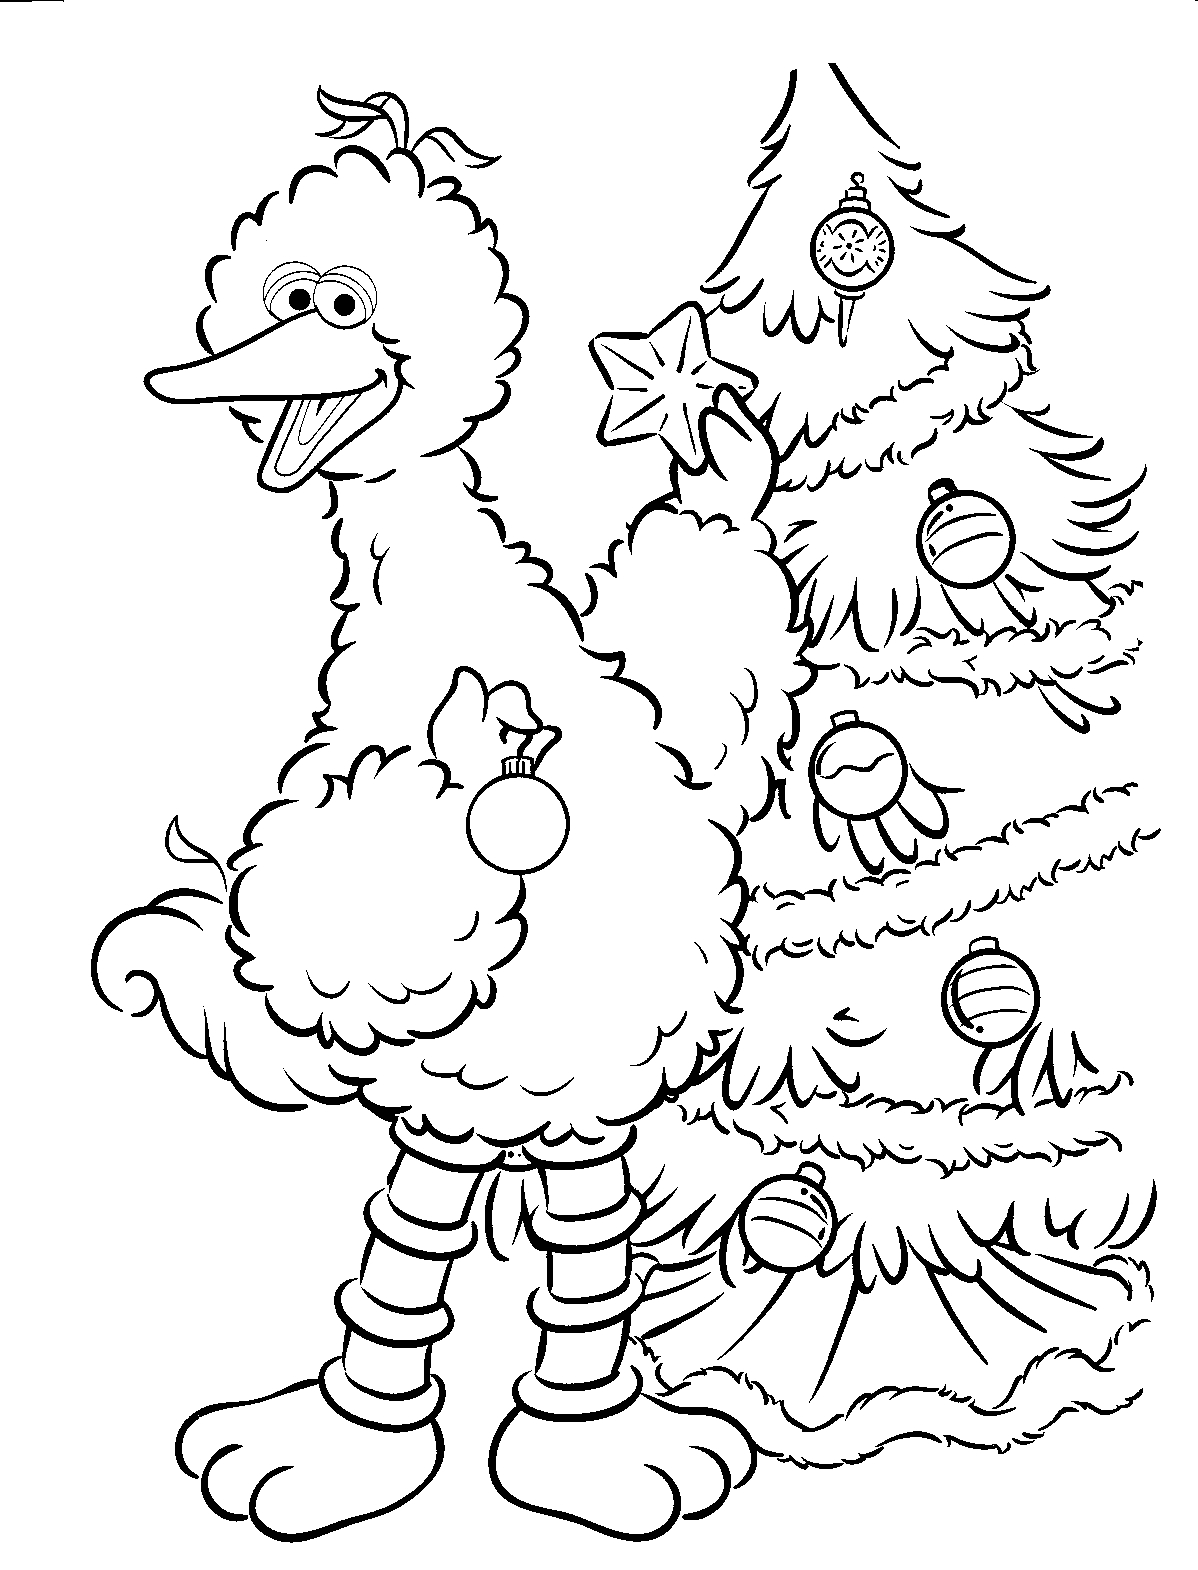 Sesame street free colouring pages for Sesame street color pages